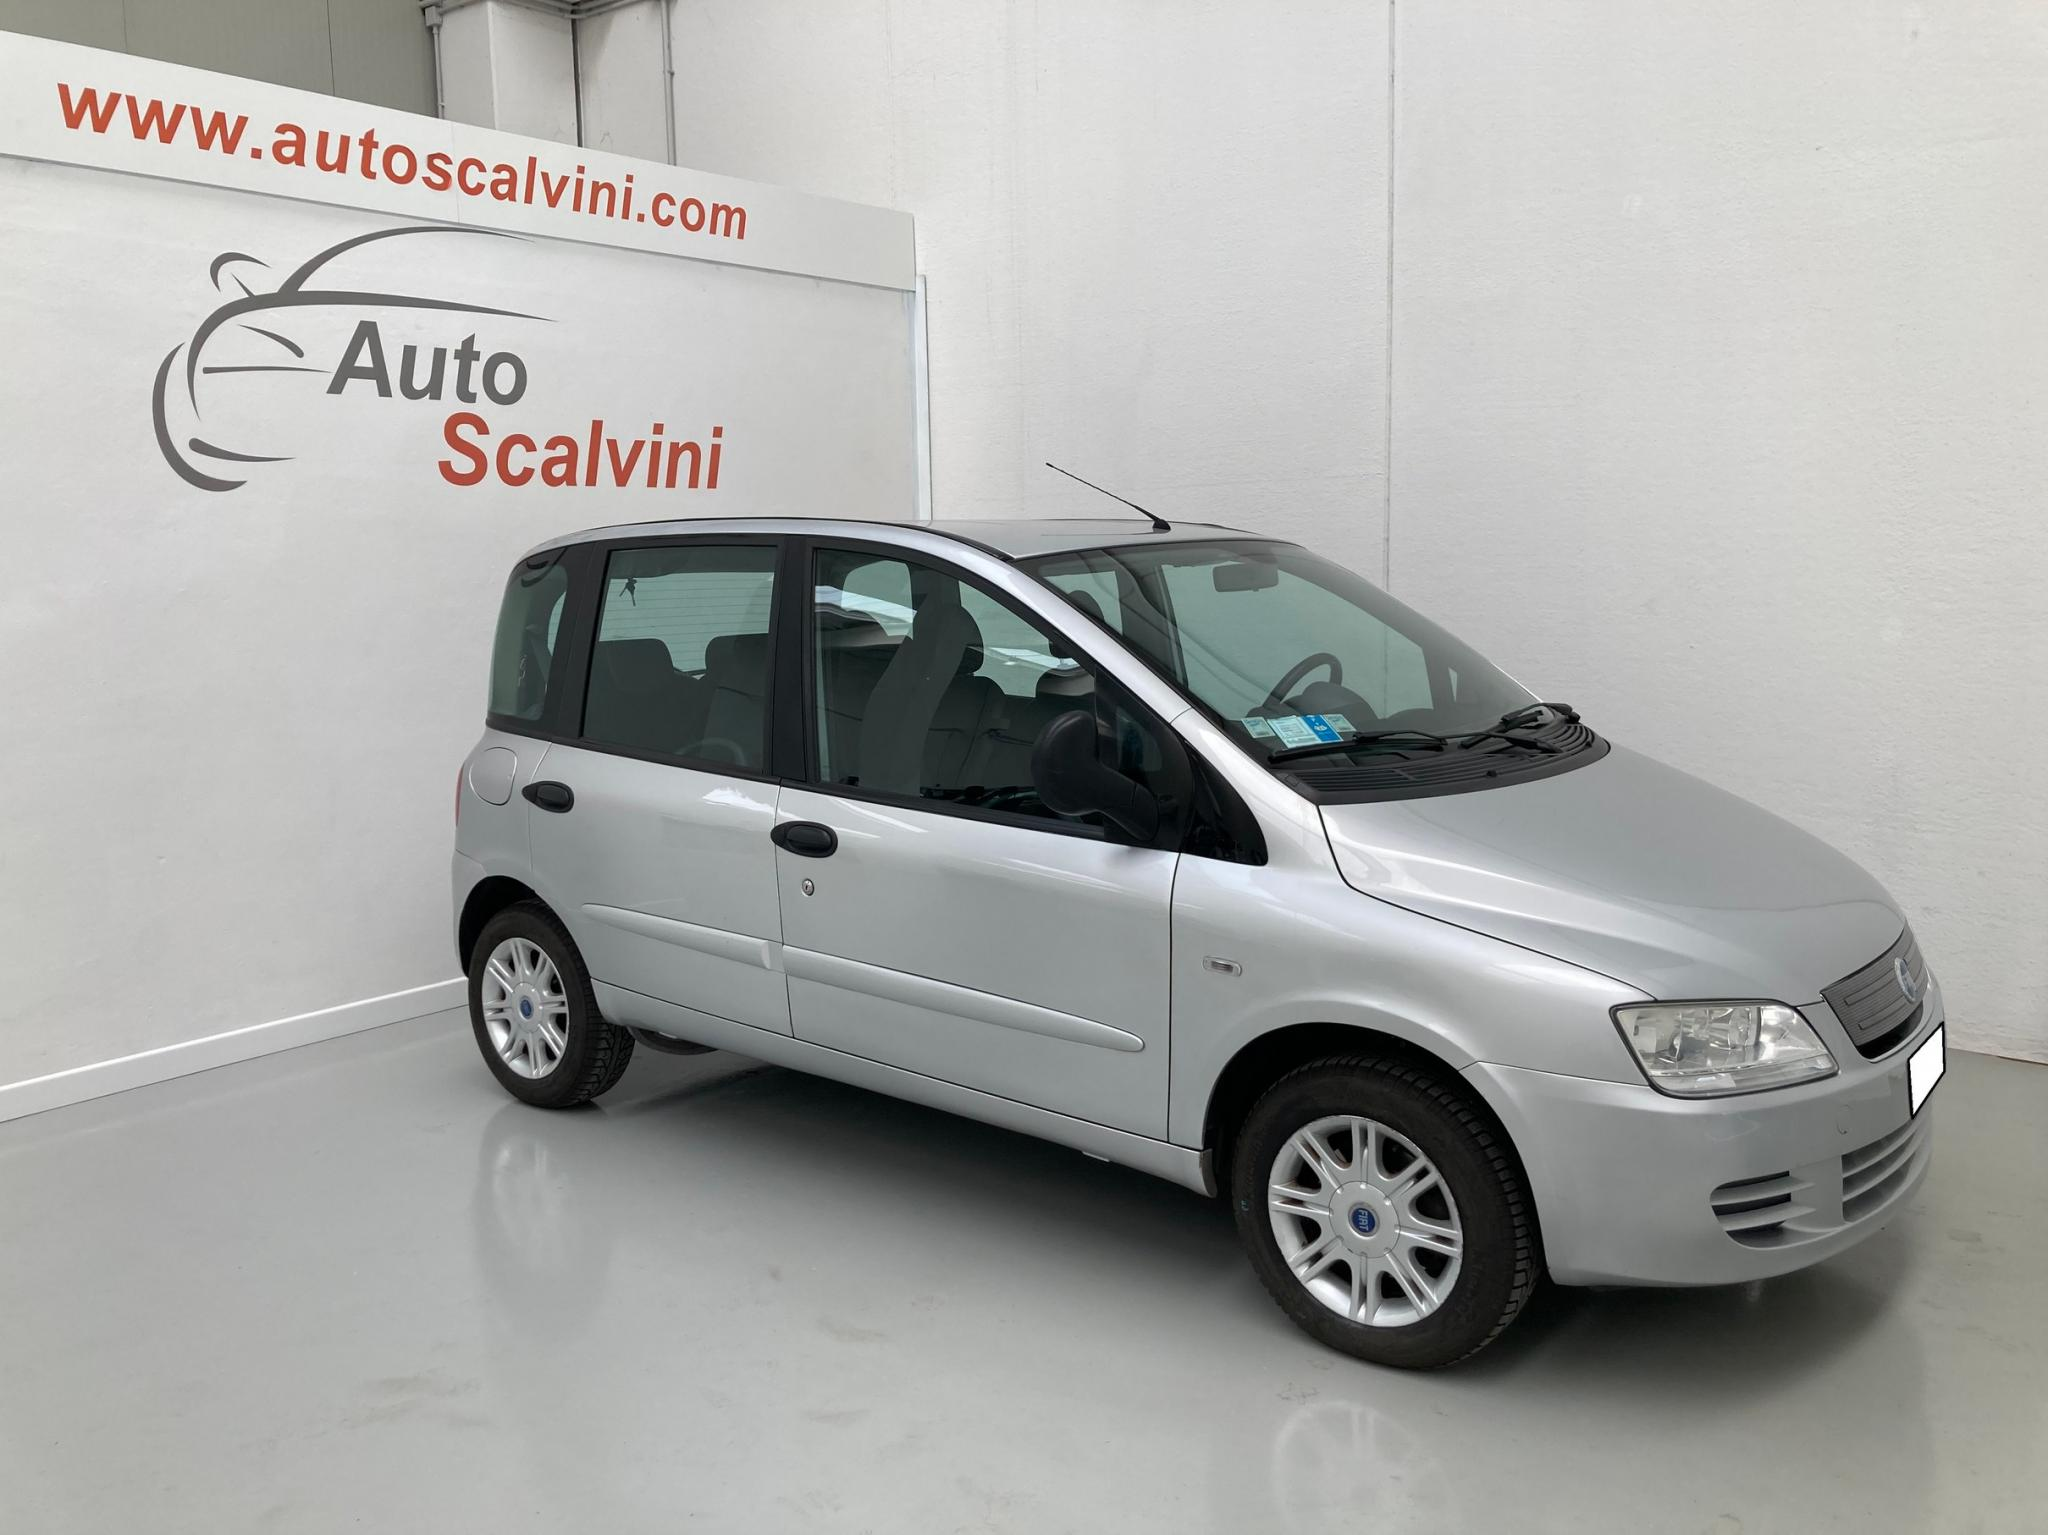 Fiat Multipla 1.6 16V Natural Power #REVIONE BOMBOLE 2022